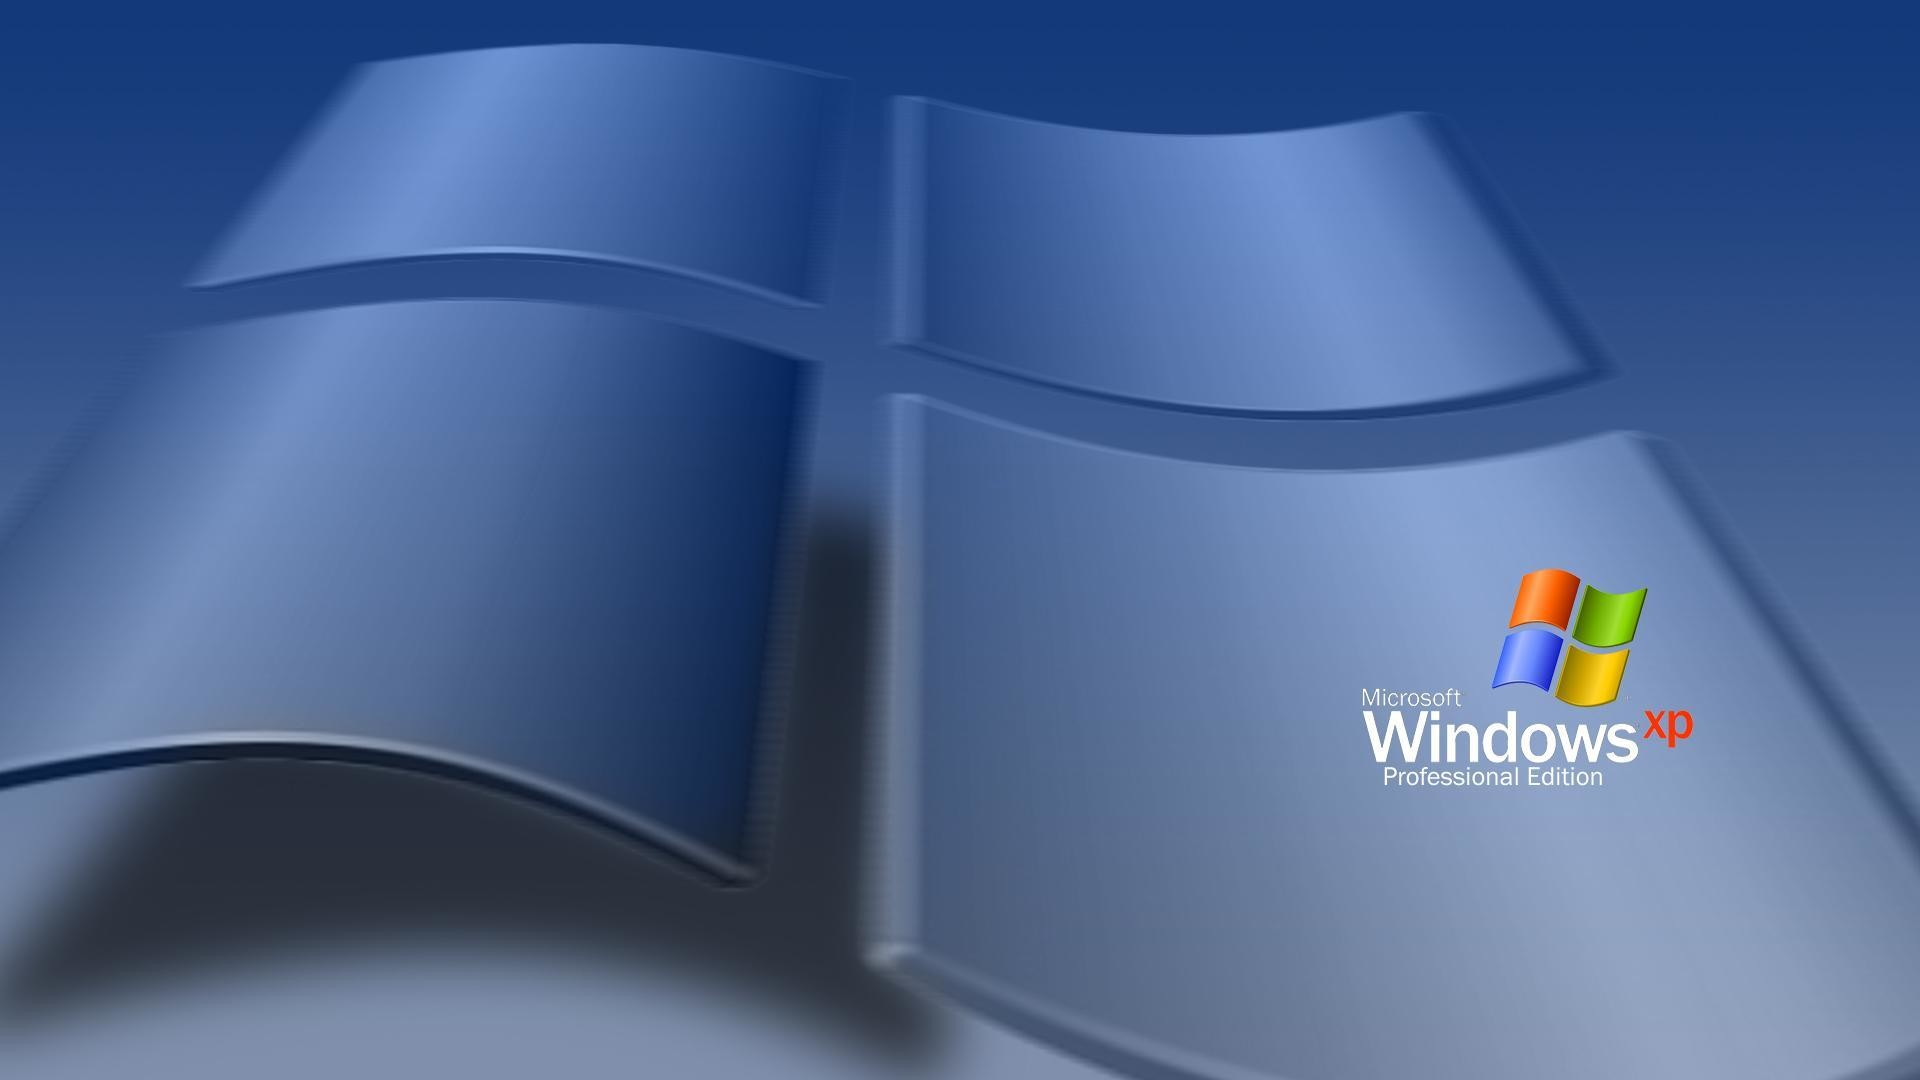 Windows XP Pro Wallpaper 42 pictures 1920x1080